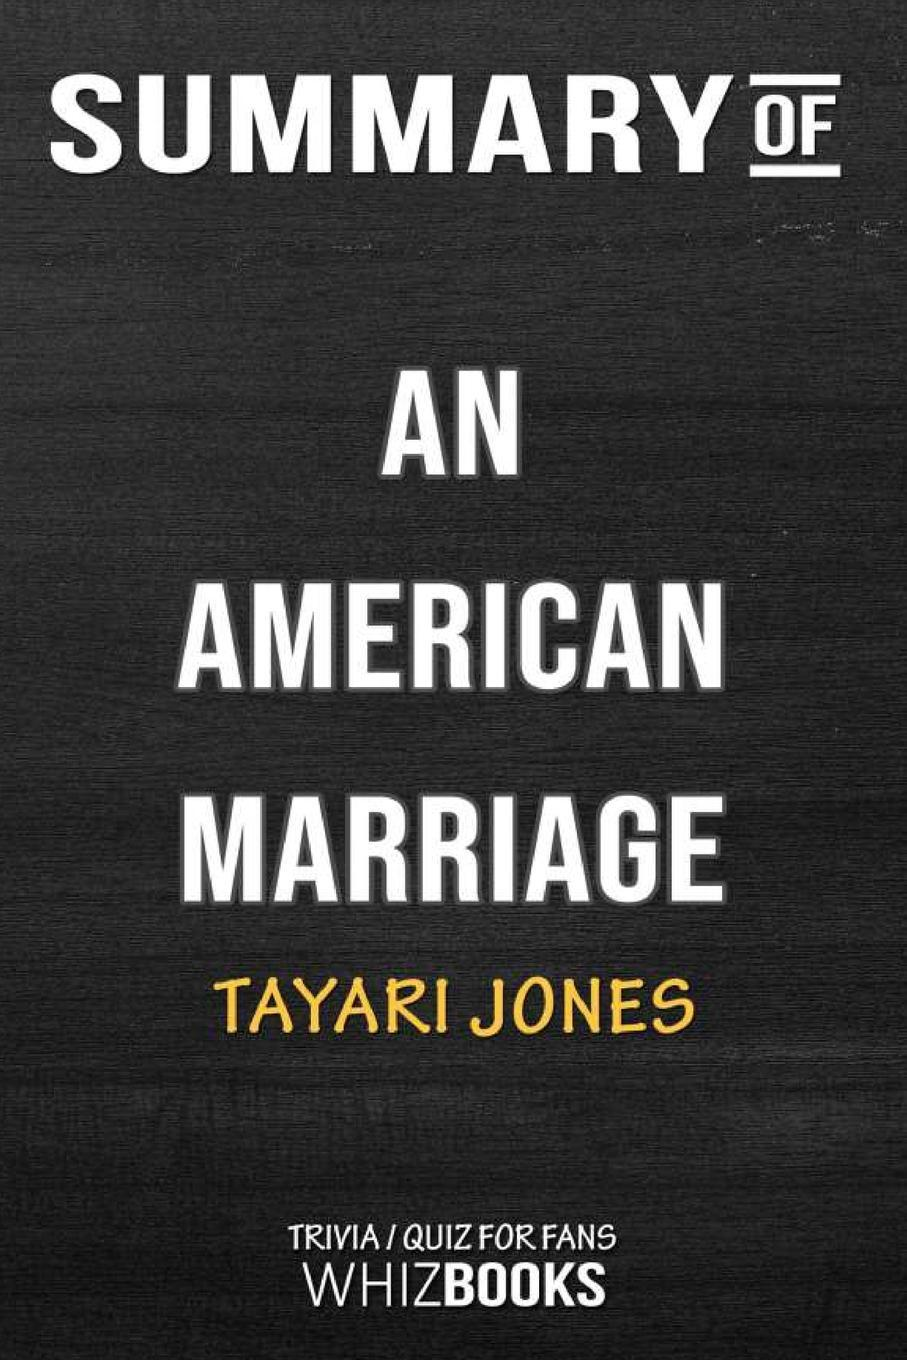 Summary of An American Marriage. A Novel (Oprah's Book Club 2018 Selection): Trivia/Quiz for Fans